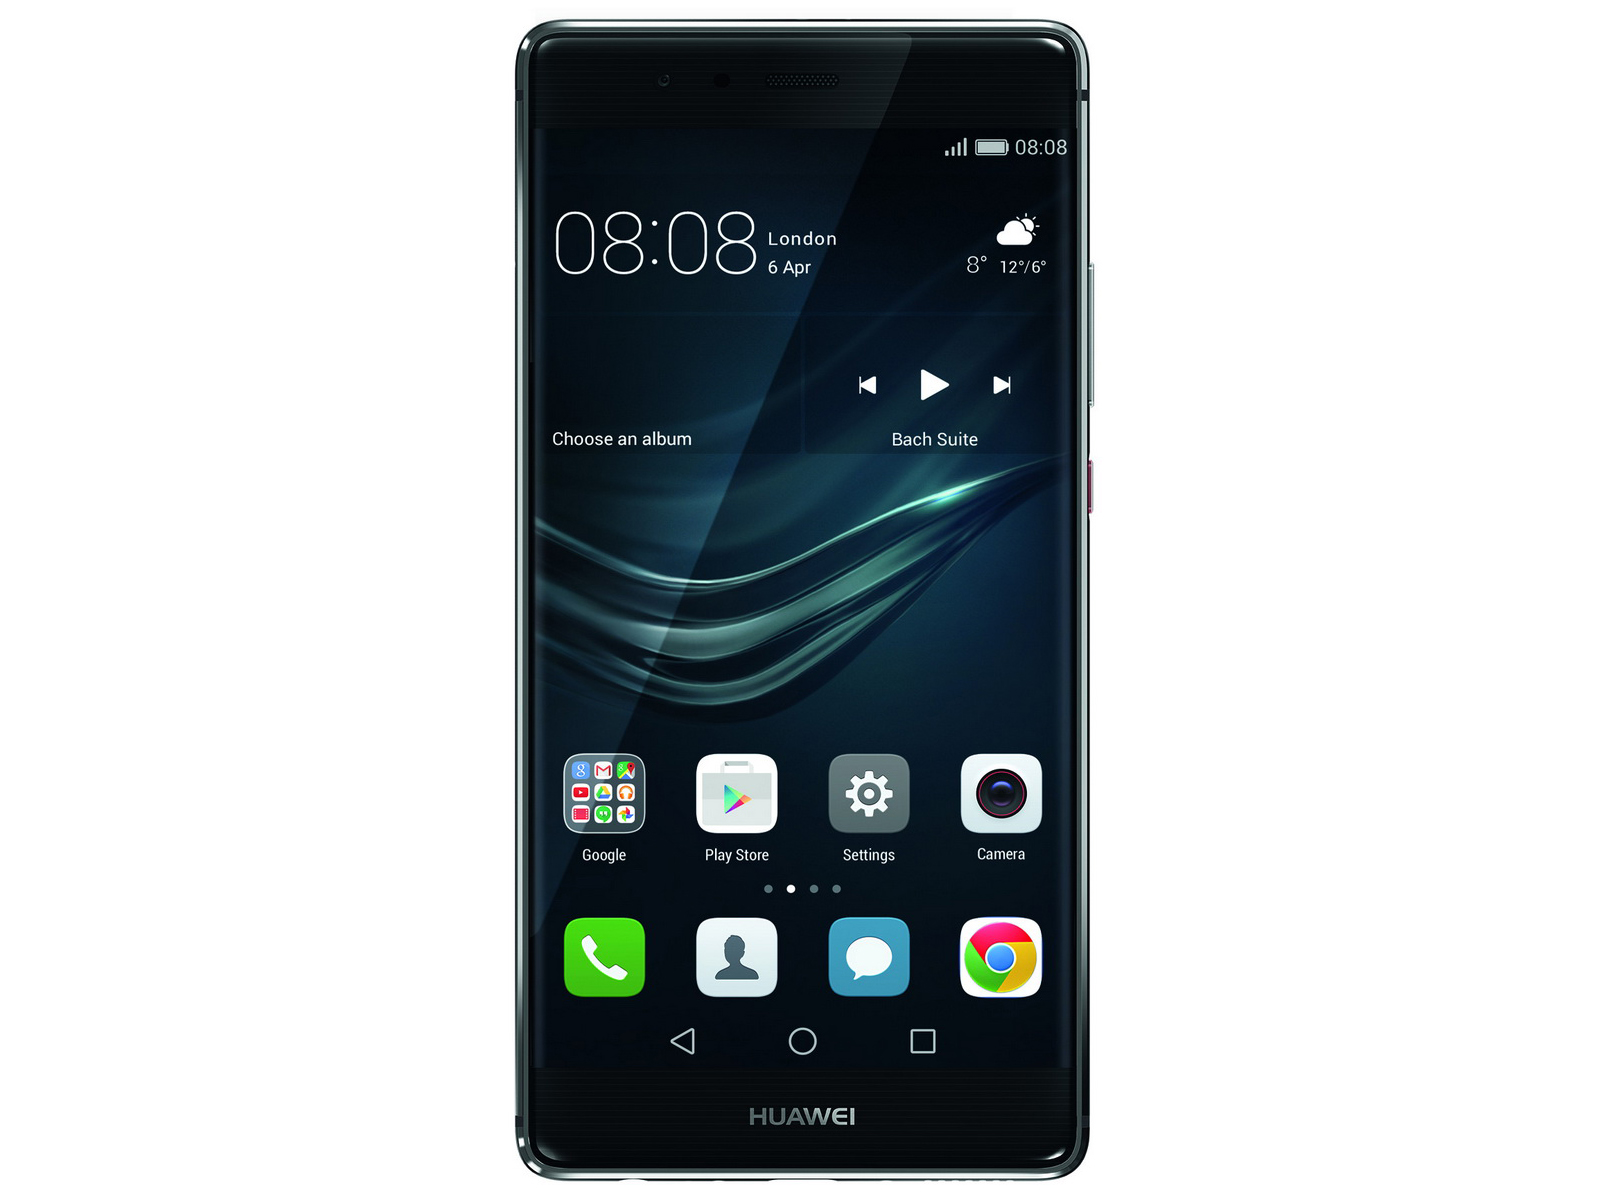 huawei p9 plus smartphone review reviews. Black Bedroom Furniture Sets. Home Design Ideas